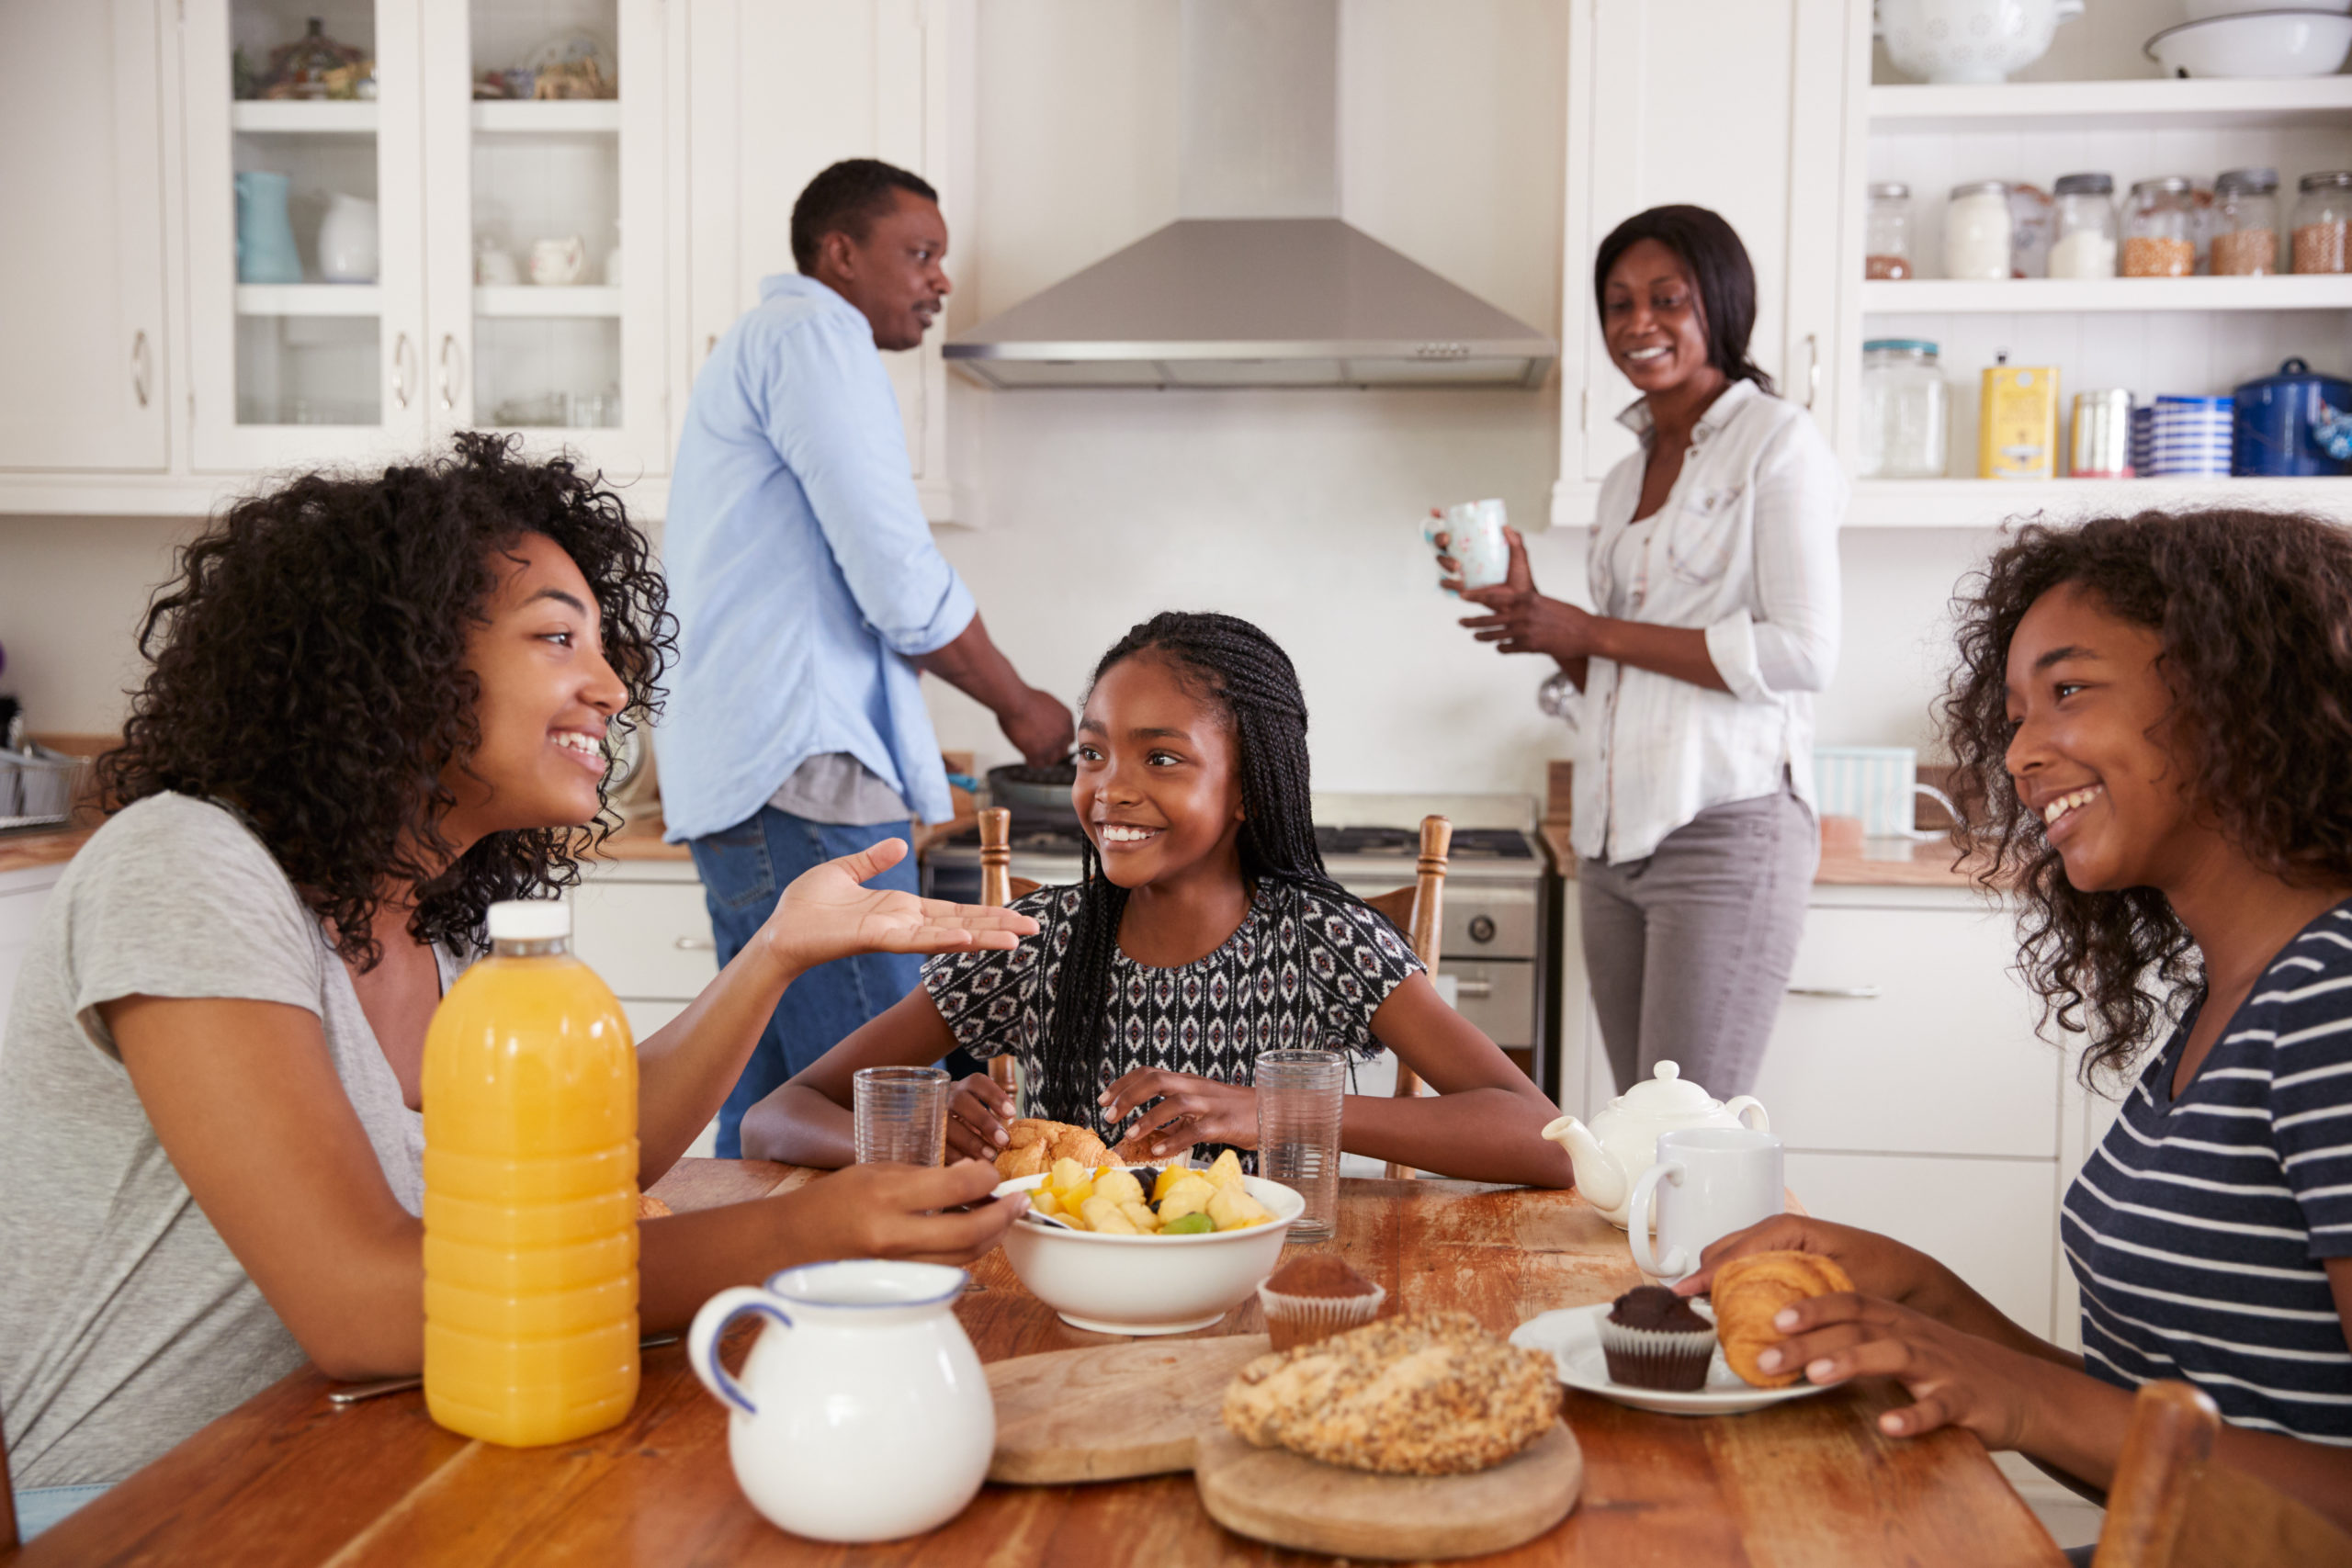 Family With Teenage Children Eating Breakfast In Kitchen